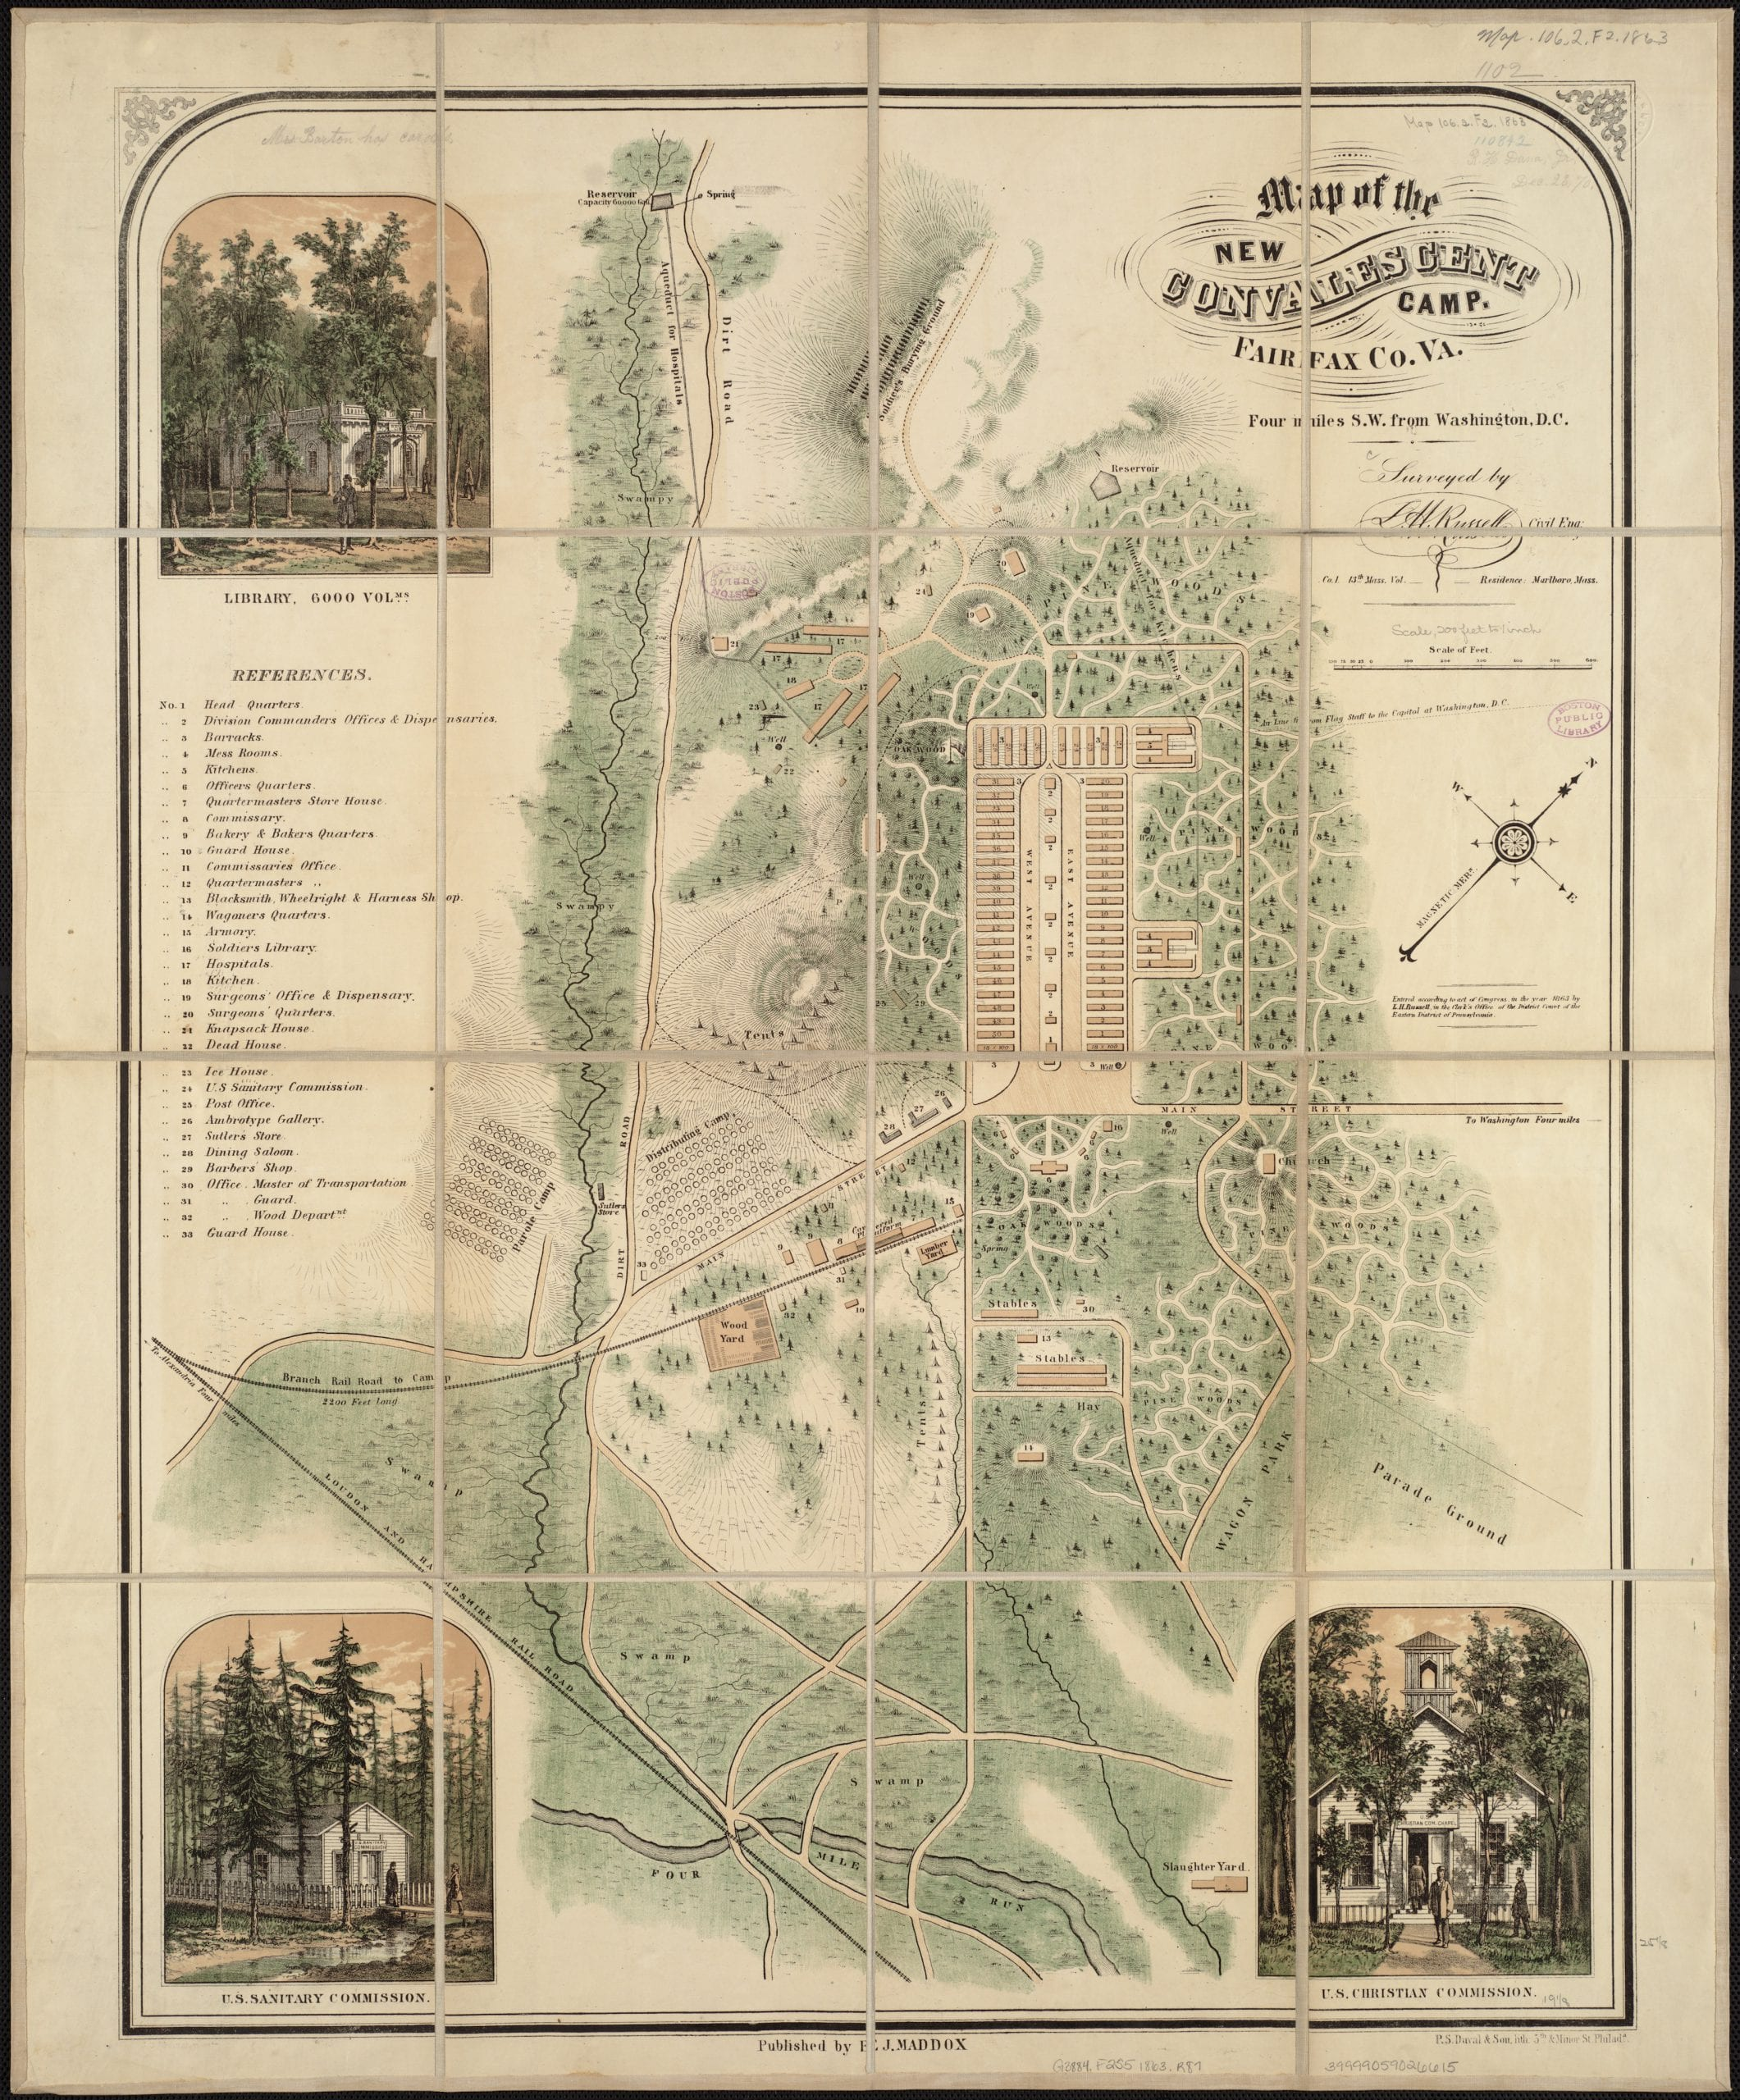 Map of the new convalescent camp, Fairfax Co., Va. four miles S.W. from Washington, D.C.